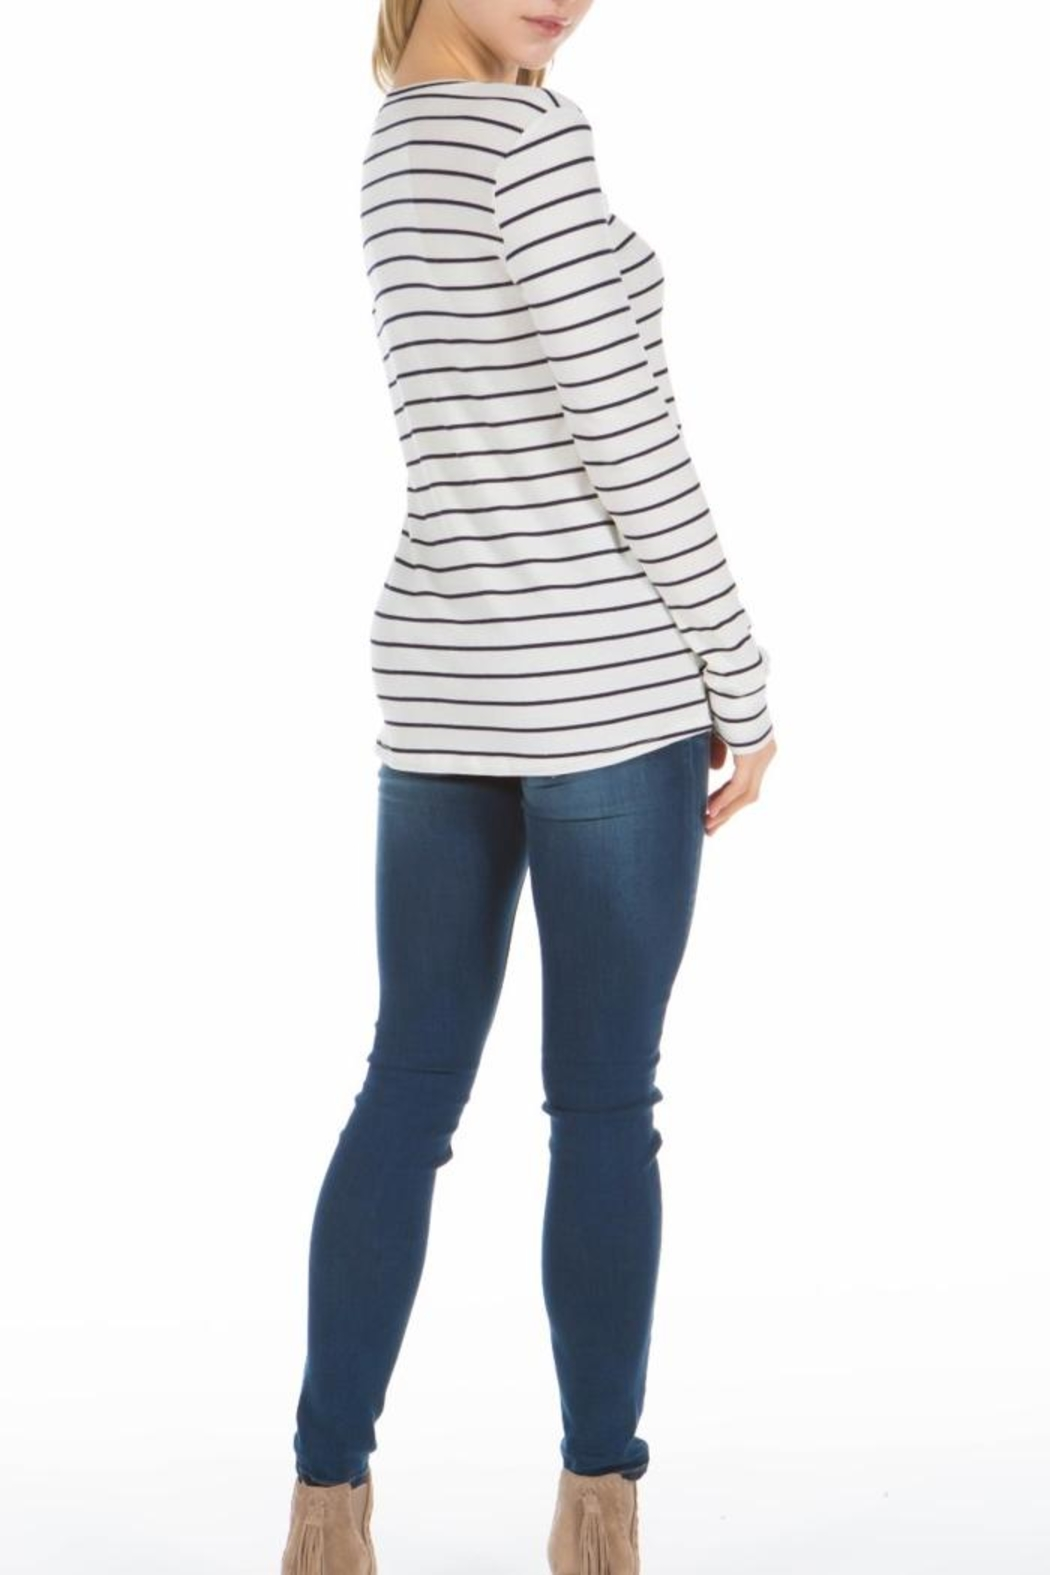 PPLA Clothing Cal Striped Knit Top - Front Full Image